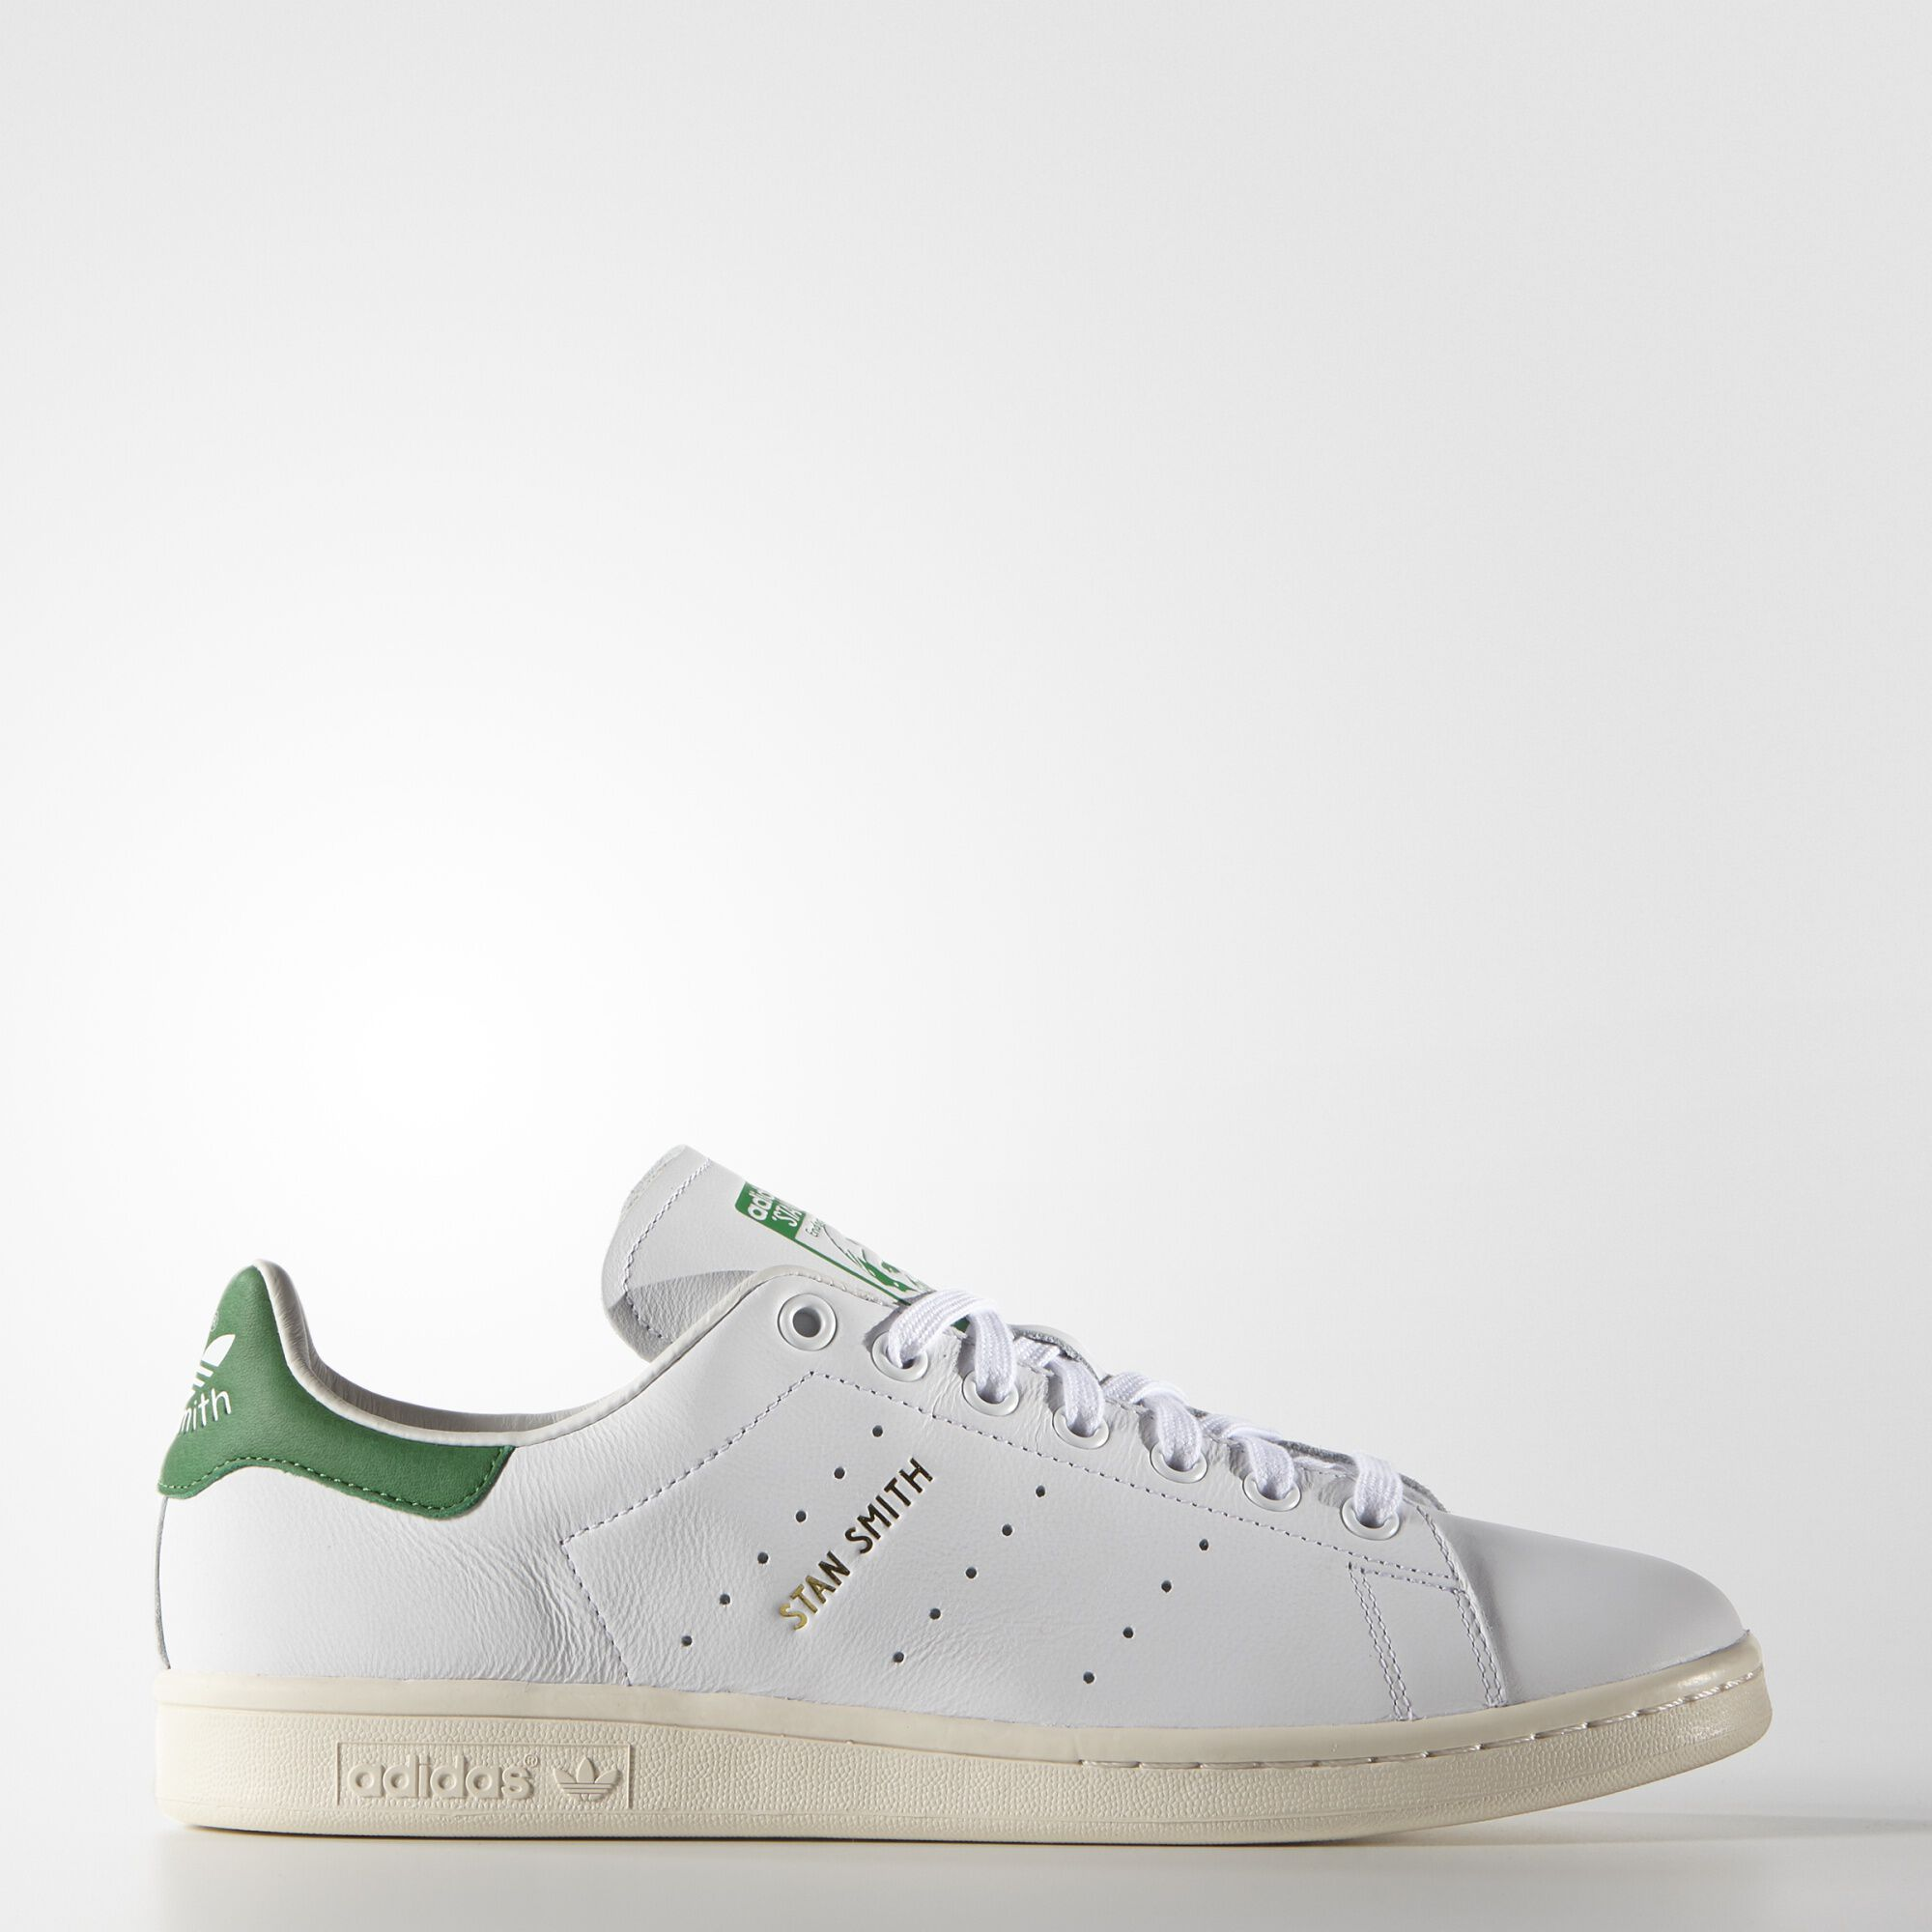 Adidas Stan Smith Limited Edition 2016